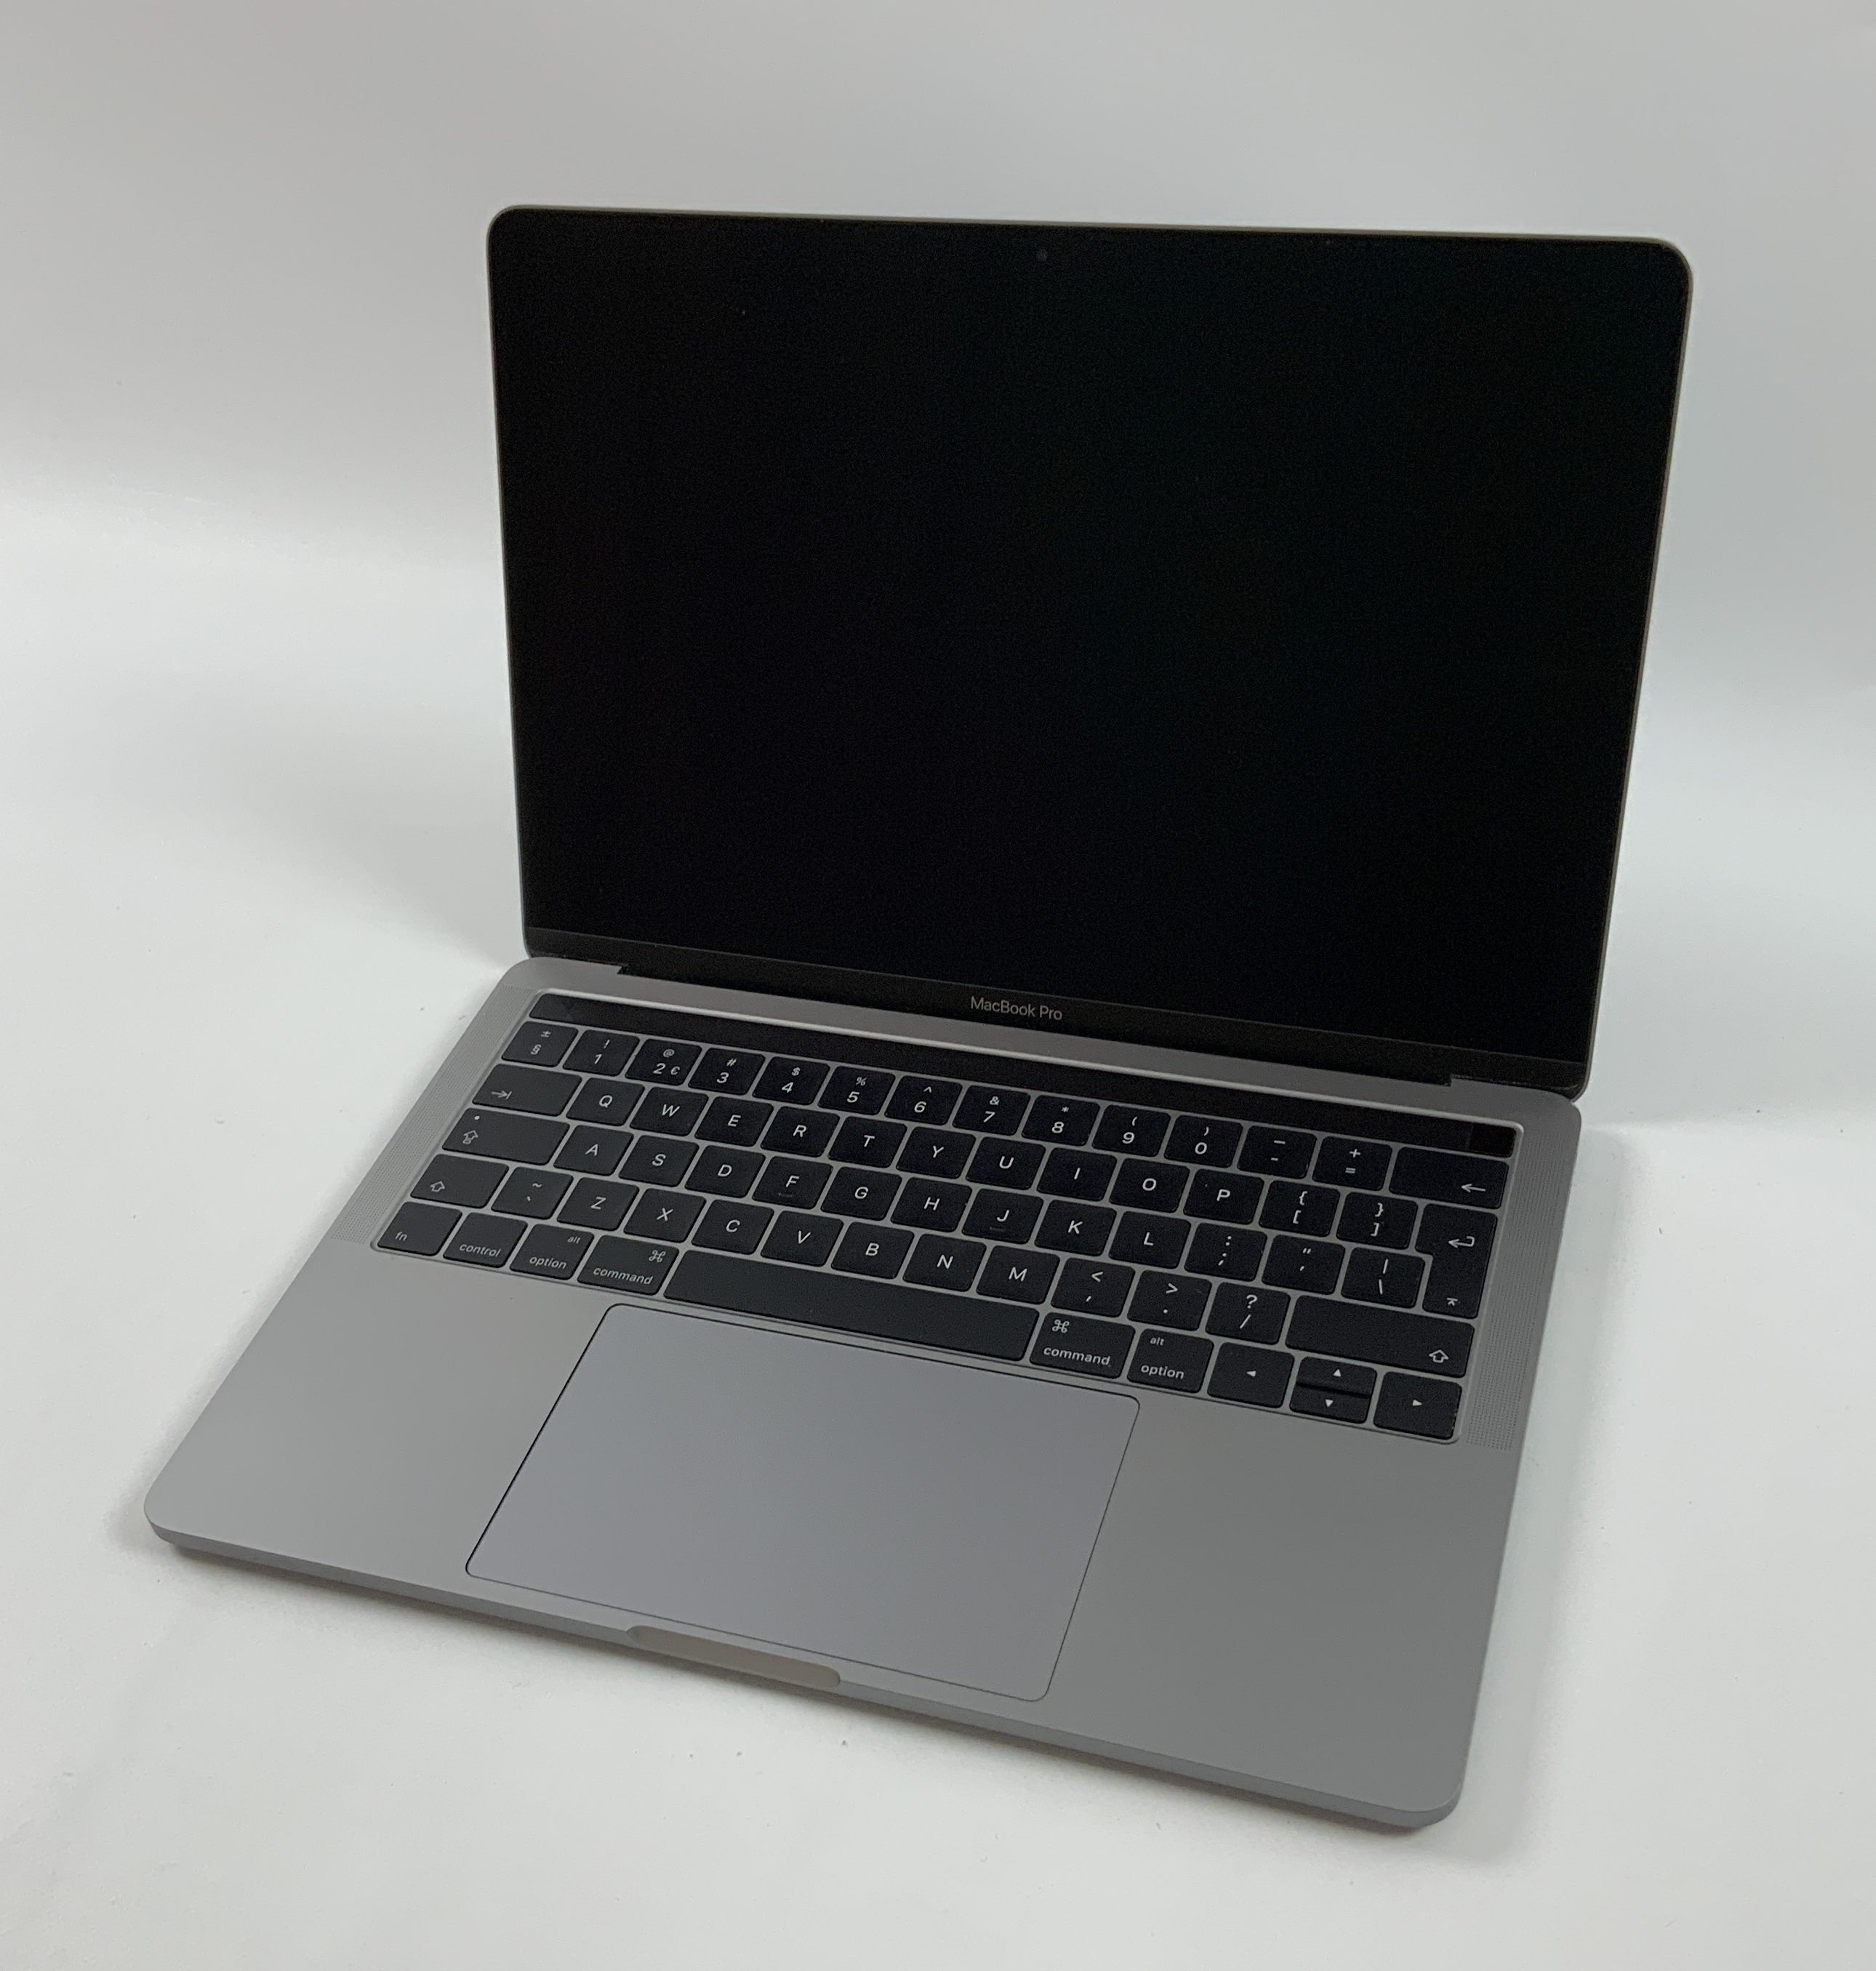 "MacBook Pro 13"" 4TBT Late 2016 (Intel Core i5 2.9 GHz 16 GB RAM 512 GB SSD), Space Gray, Intel Core i5 2.9 GHz, 16 GB RAM, 512 GB SSD, imagen 1"